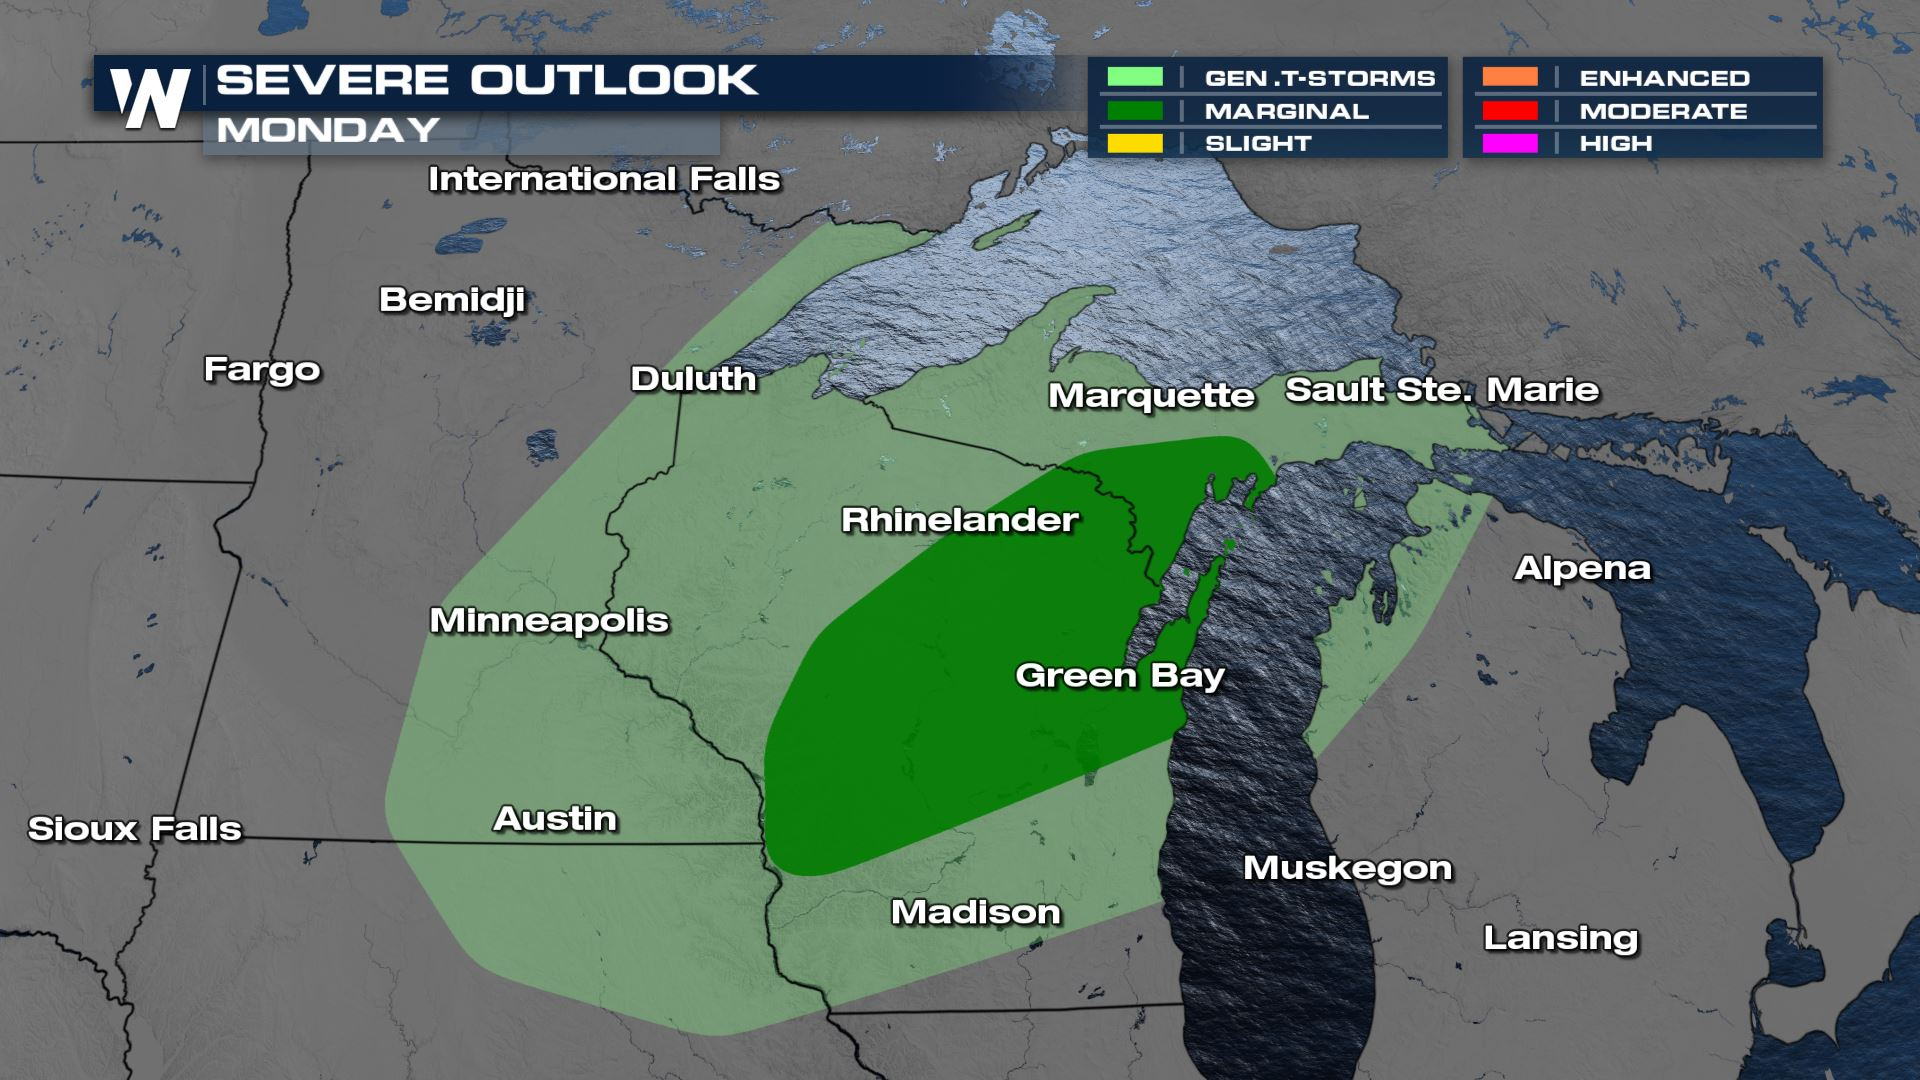 Storm Risk in the Upper Midwest